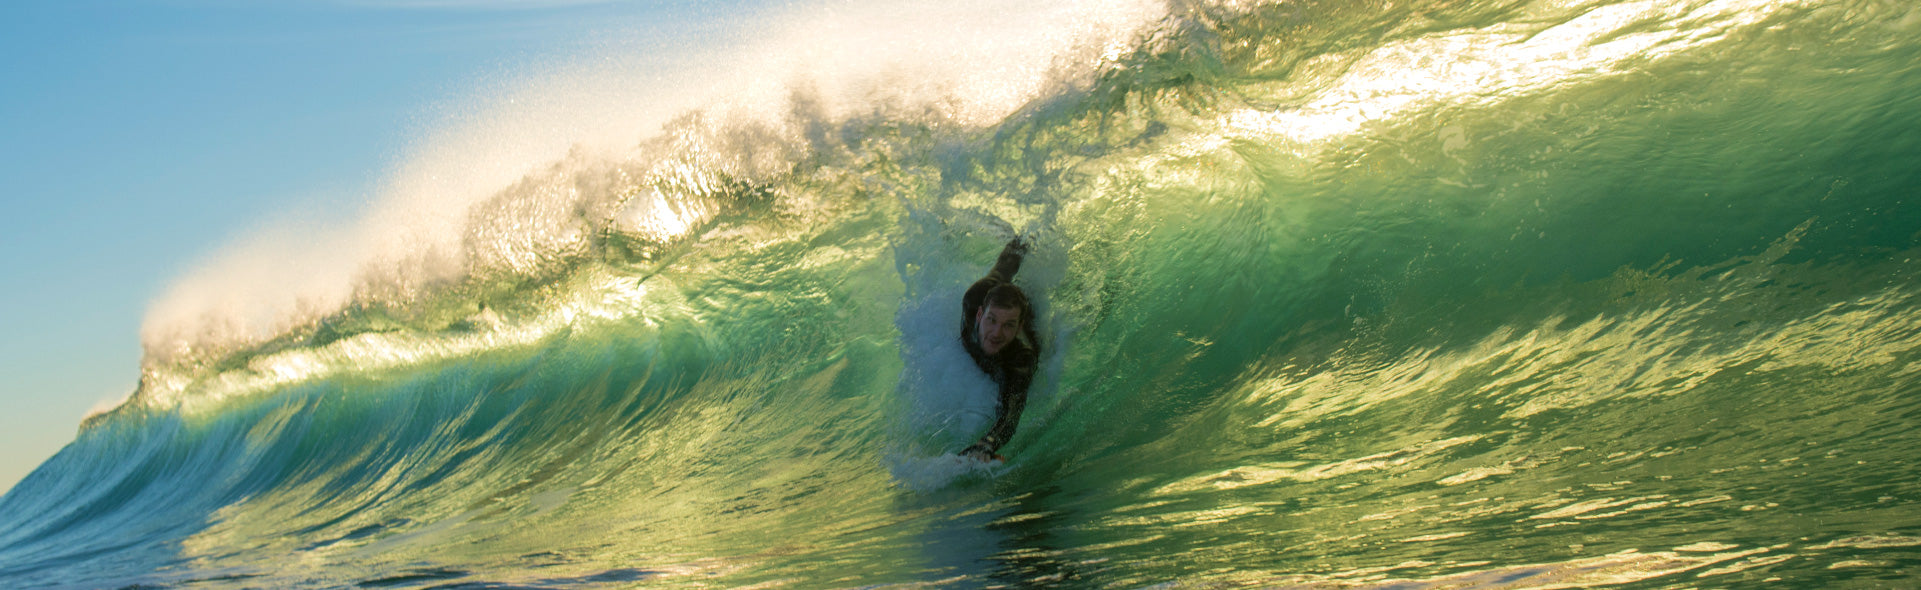 bodysurfing-hand-plane-ecto-handplanes-chris-anderson-photo-seb-diaz-surfographer-sunny